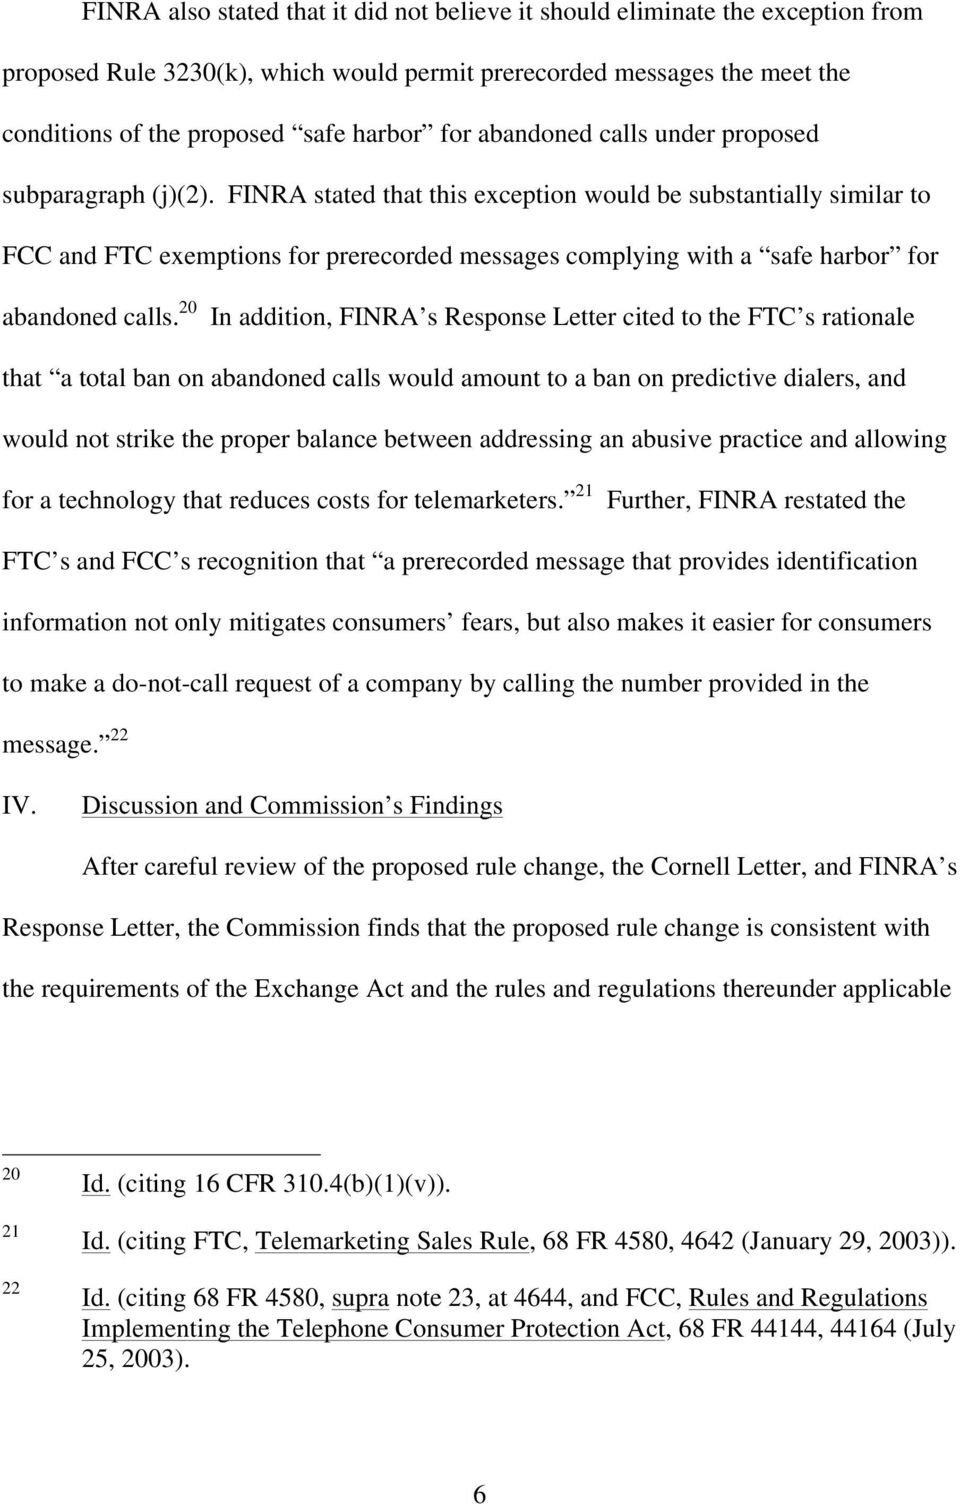 FINRA stated that this exception would be substantially similar to FCC and FTC exemptions for prerecorded messages complying with a safe harbor for abandoned calls.